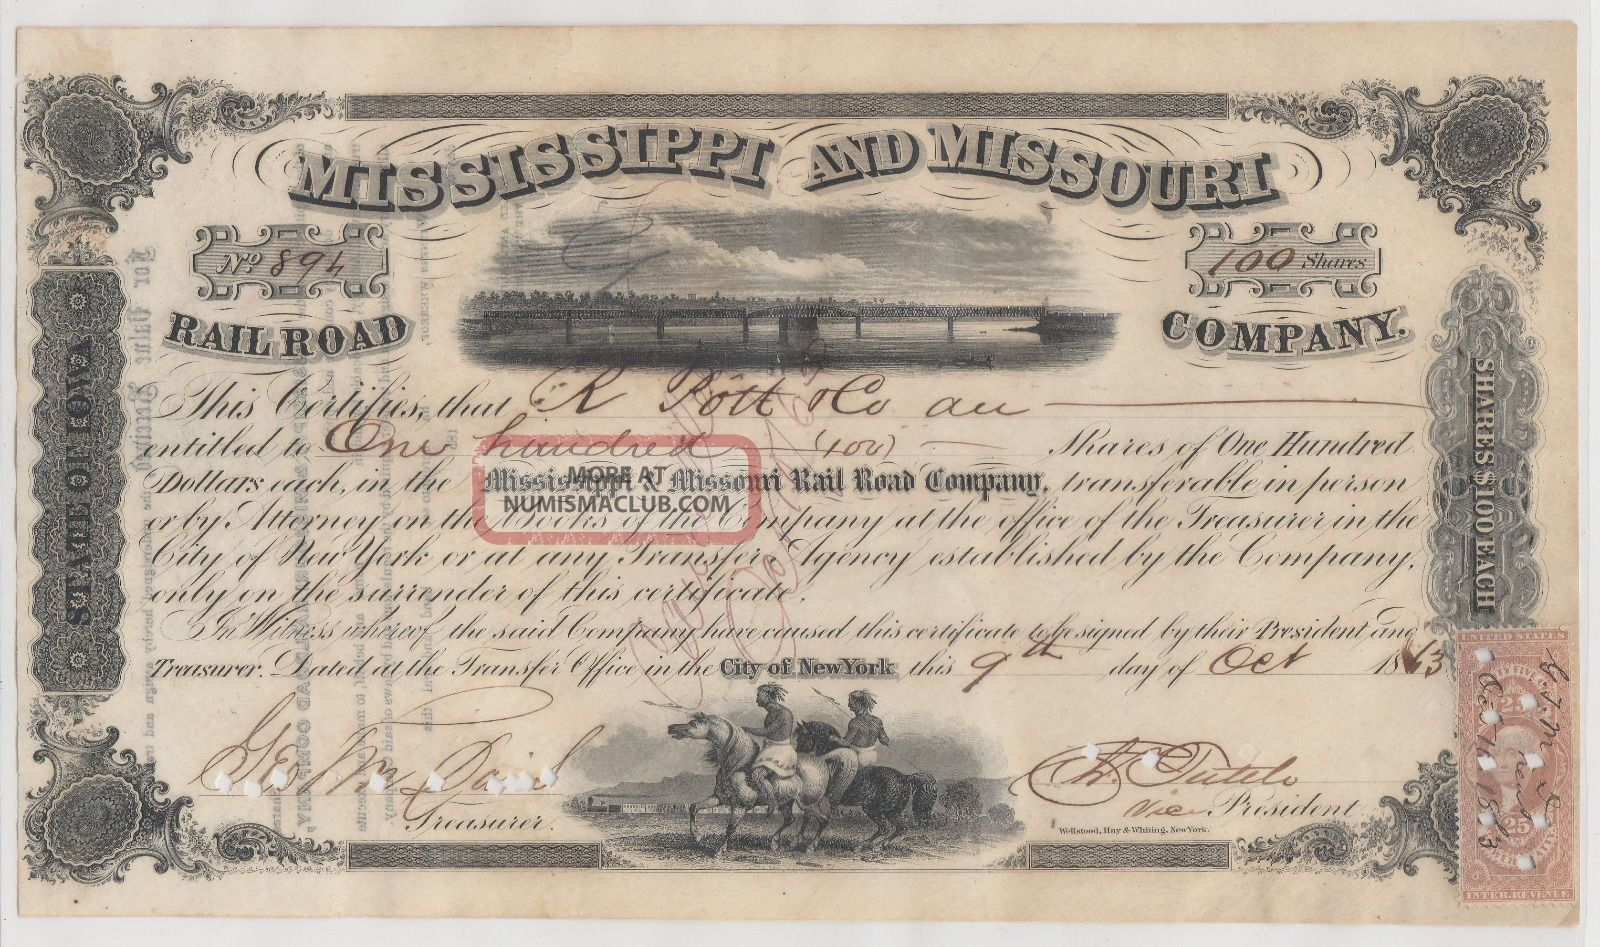 1863 Mississippi And Missouri Railroad Company.  Issued/signed/cancelled. Transportation photo